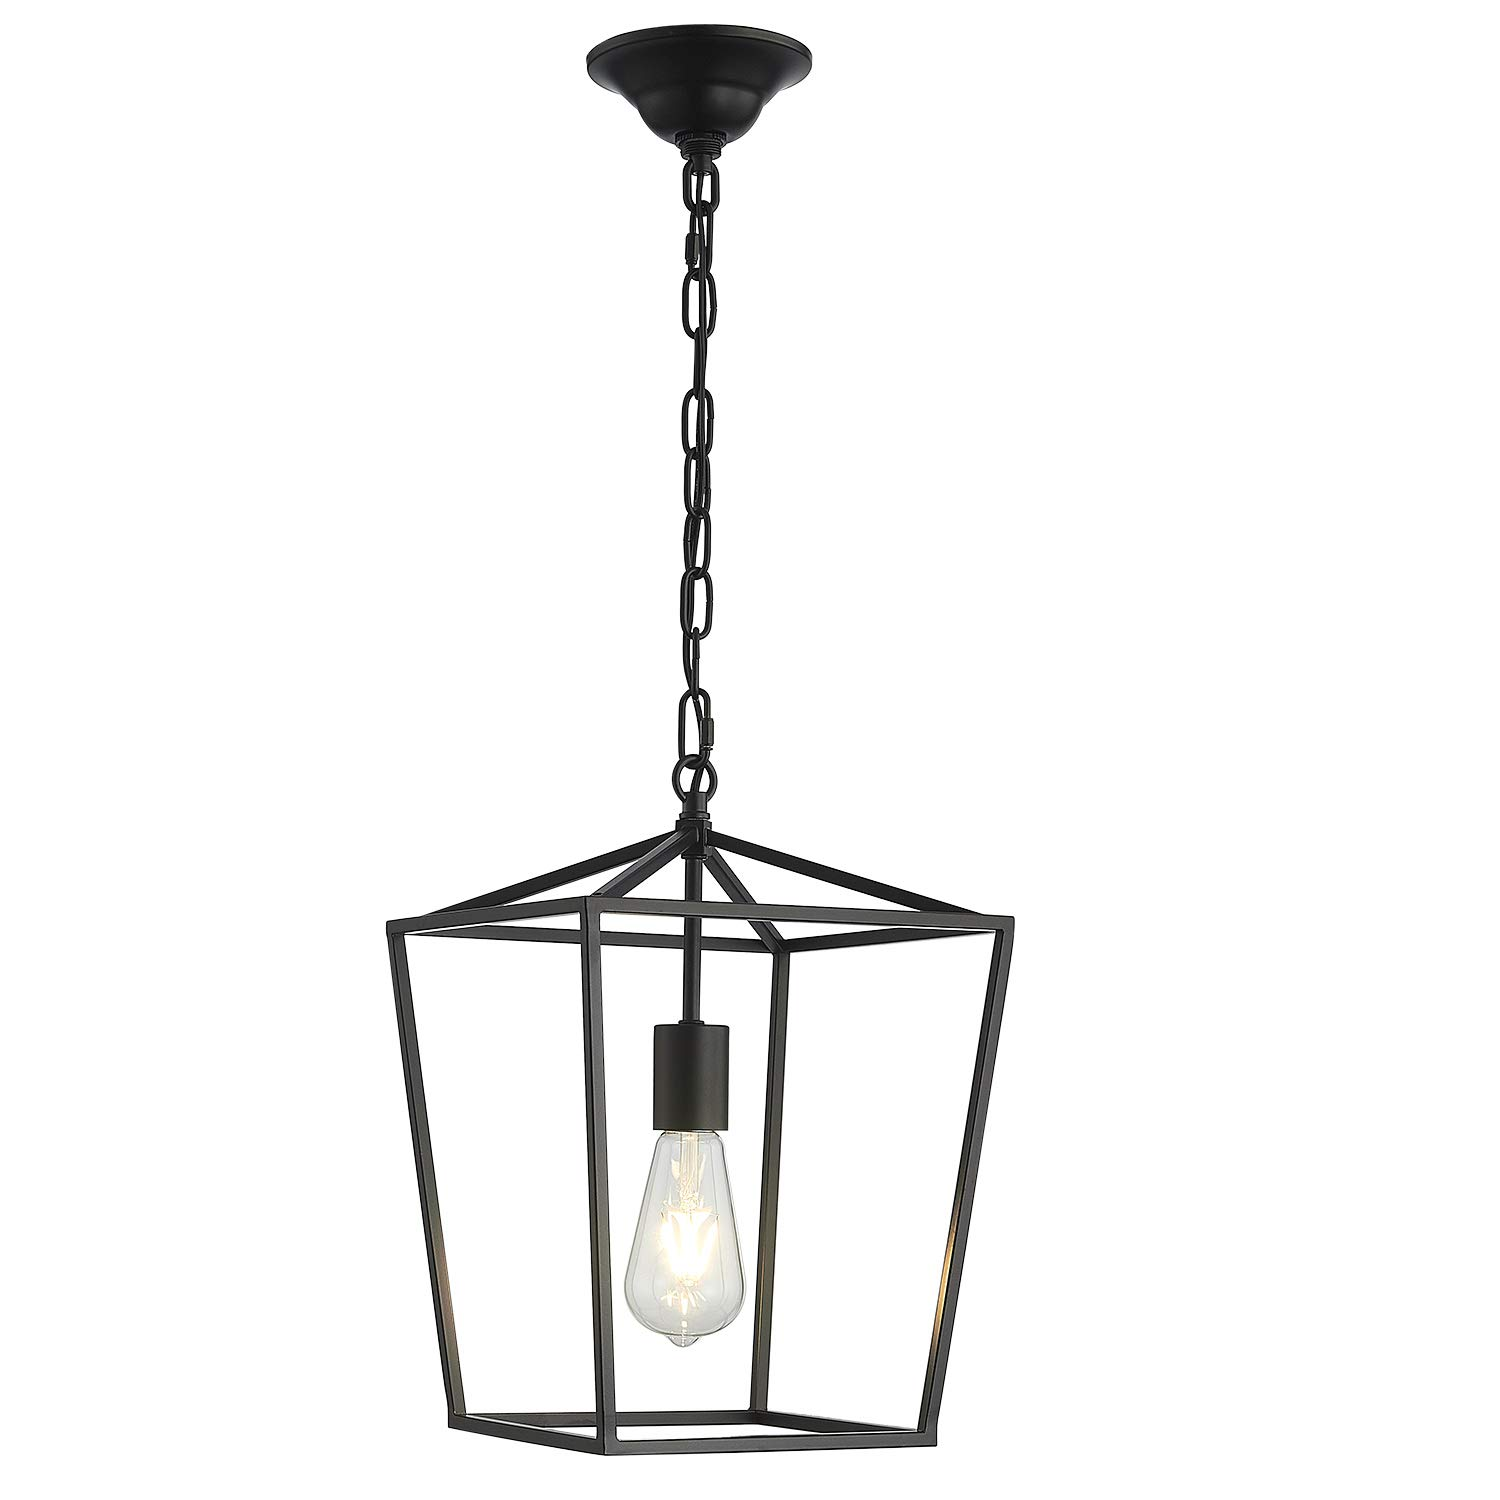 ANJIADENGSHI Pendant Lantern Industrial Vintage Cage Hanging Lantern Iron with 1 Pendant Lantern Lights for Traditional Dining Room Bar Cafe, Matte Black